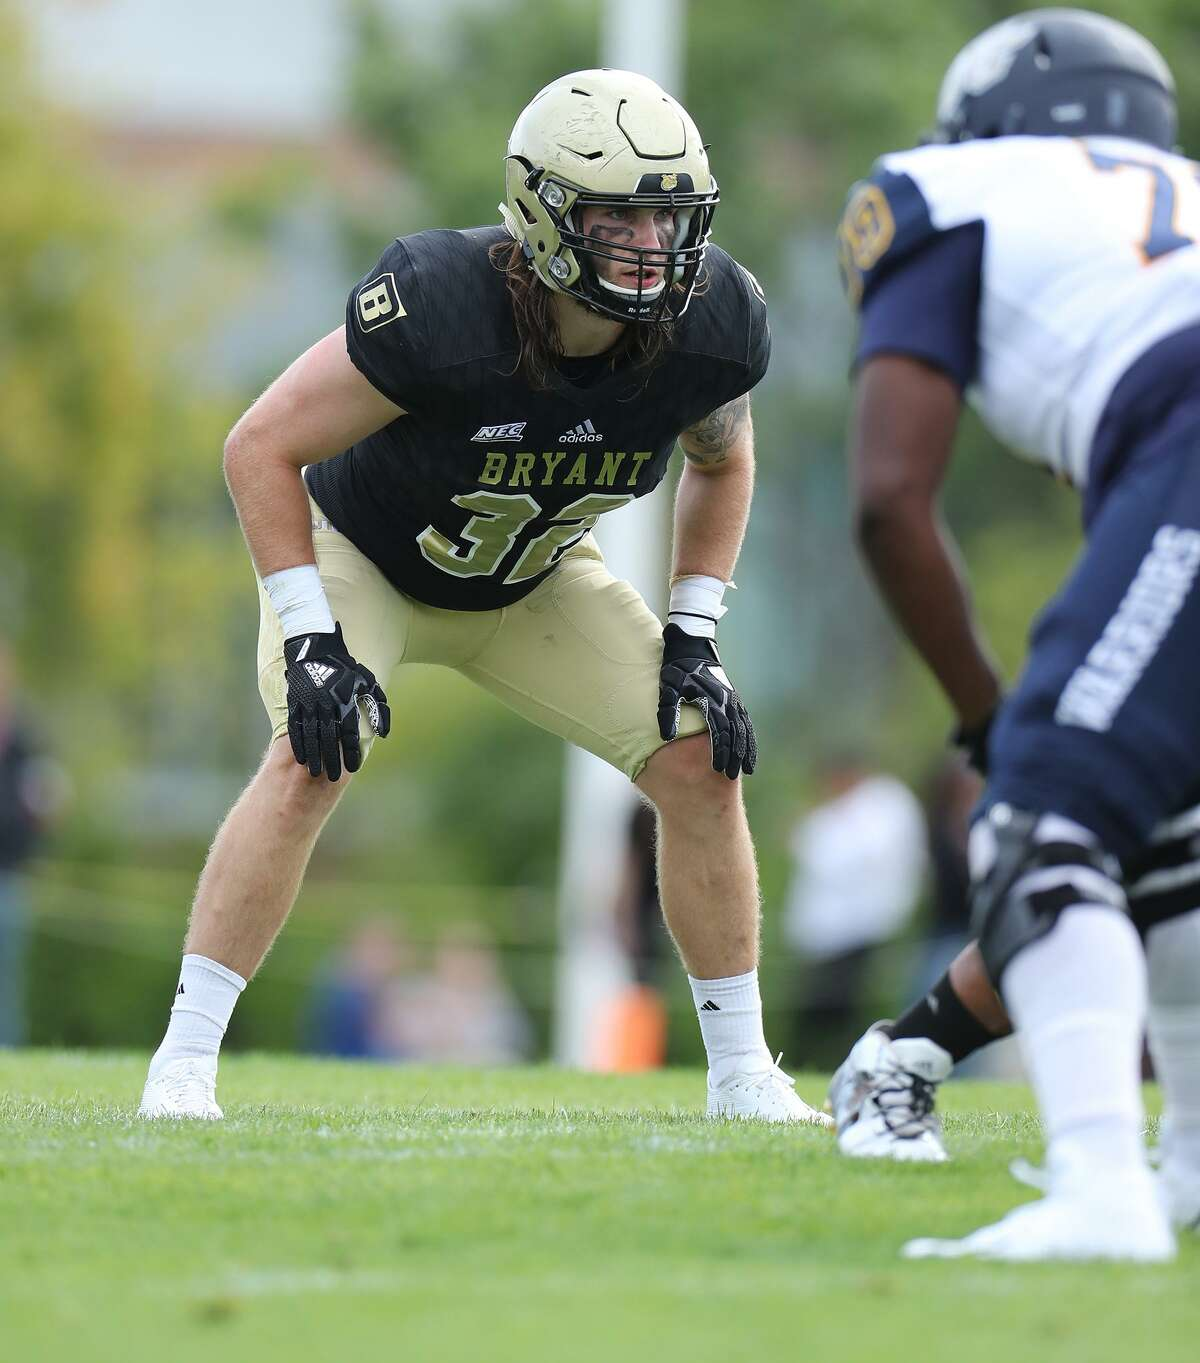 Byrant's Thomas Costigan, a Stamford native and 2015 Trinity Catholic graduate, has been named the 2017 Northeast Conference Defensive Player of the Year and named to the All-New England football team.